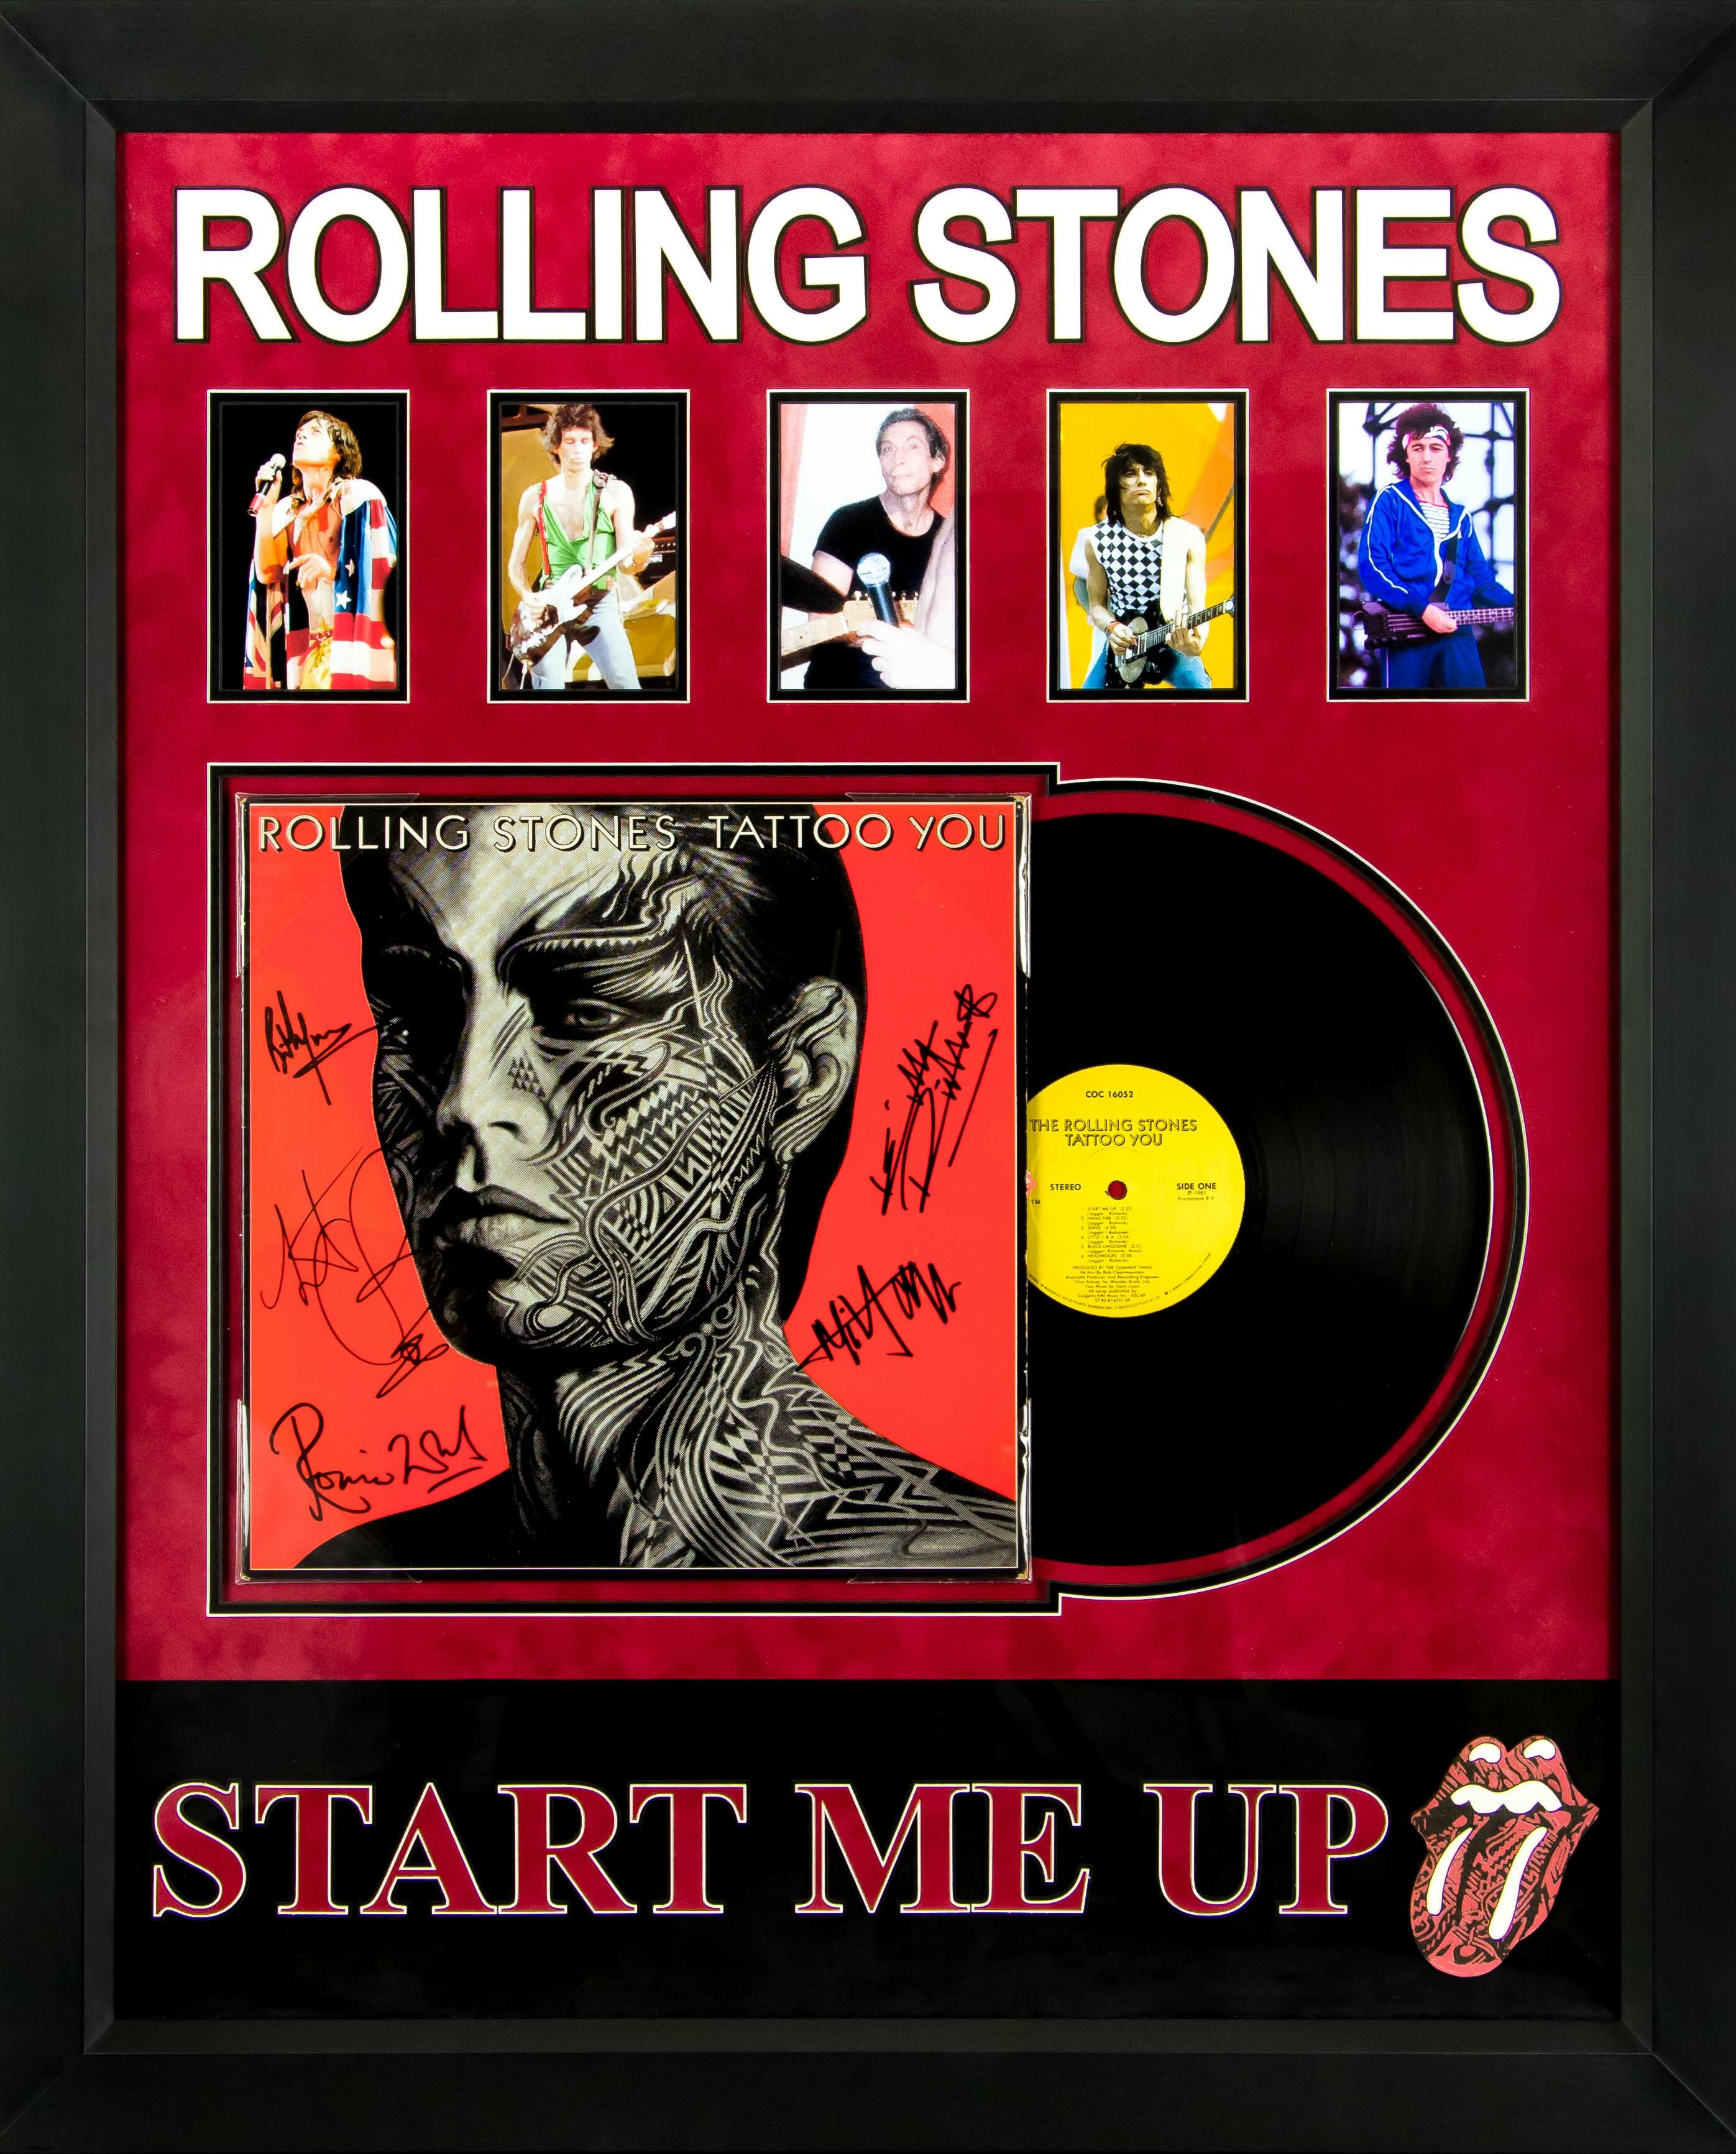 Rolling Stones Start Me Up Tattoo You Framed Autographed Album Collage